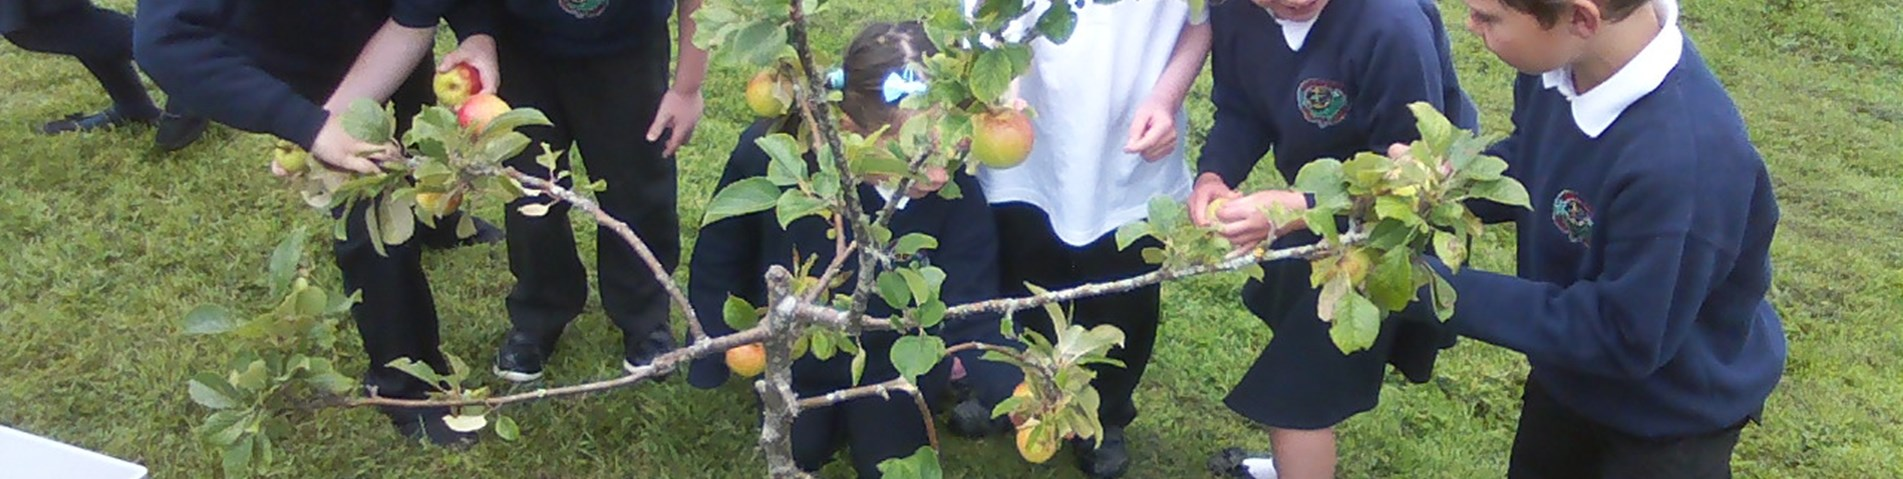 Food for Life Scotland Argyll Bute primary school children collecting apples with the help of secondary pupils Scotland fruit tree garden school grounds.jpg